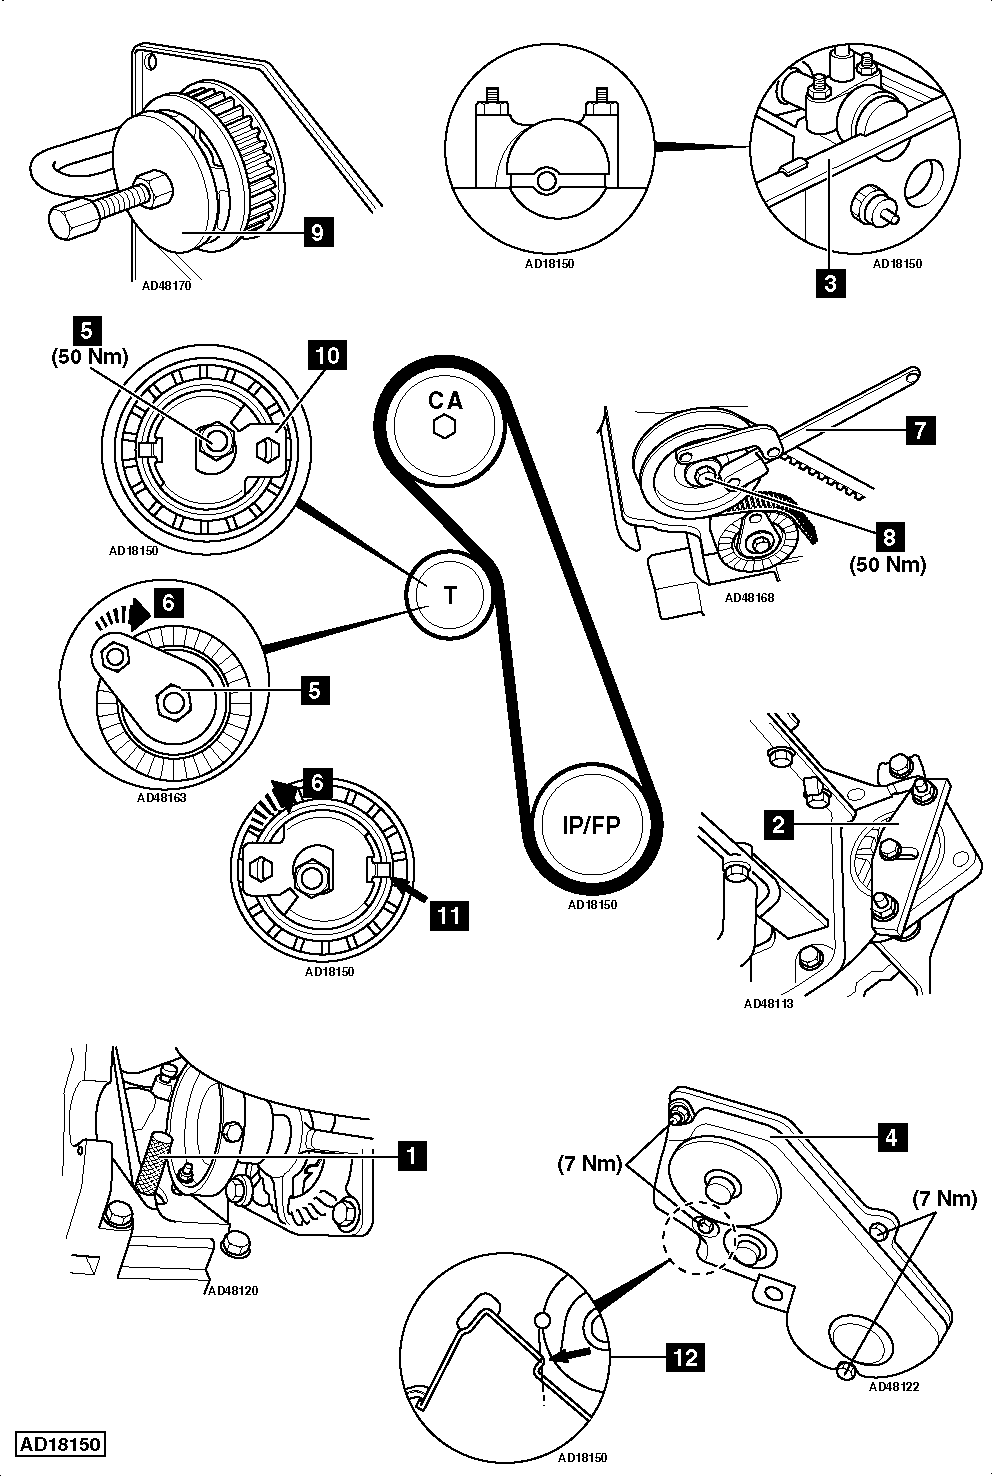 2013 Ford Focus Engine Diagram FULL HD Quality Version